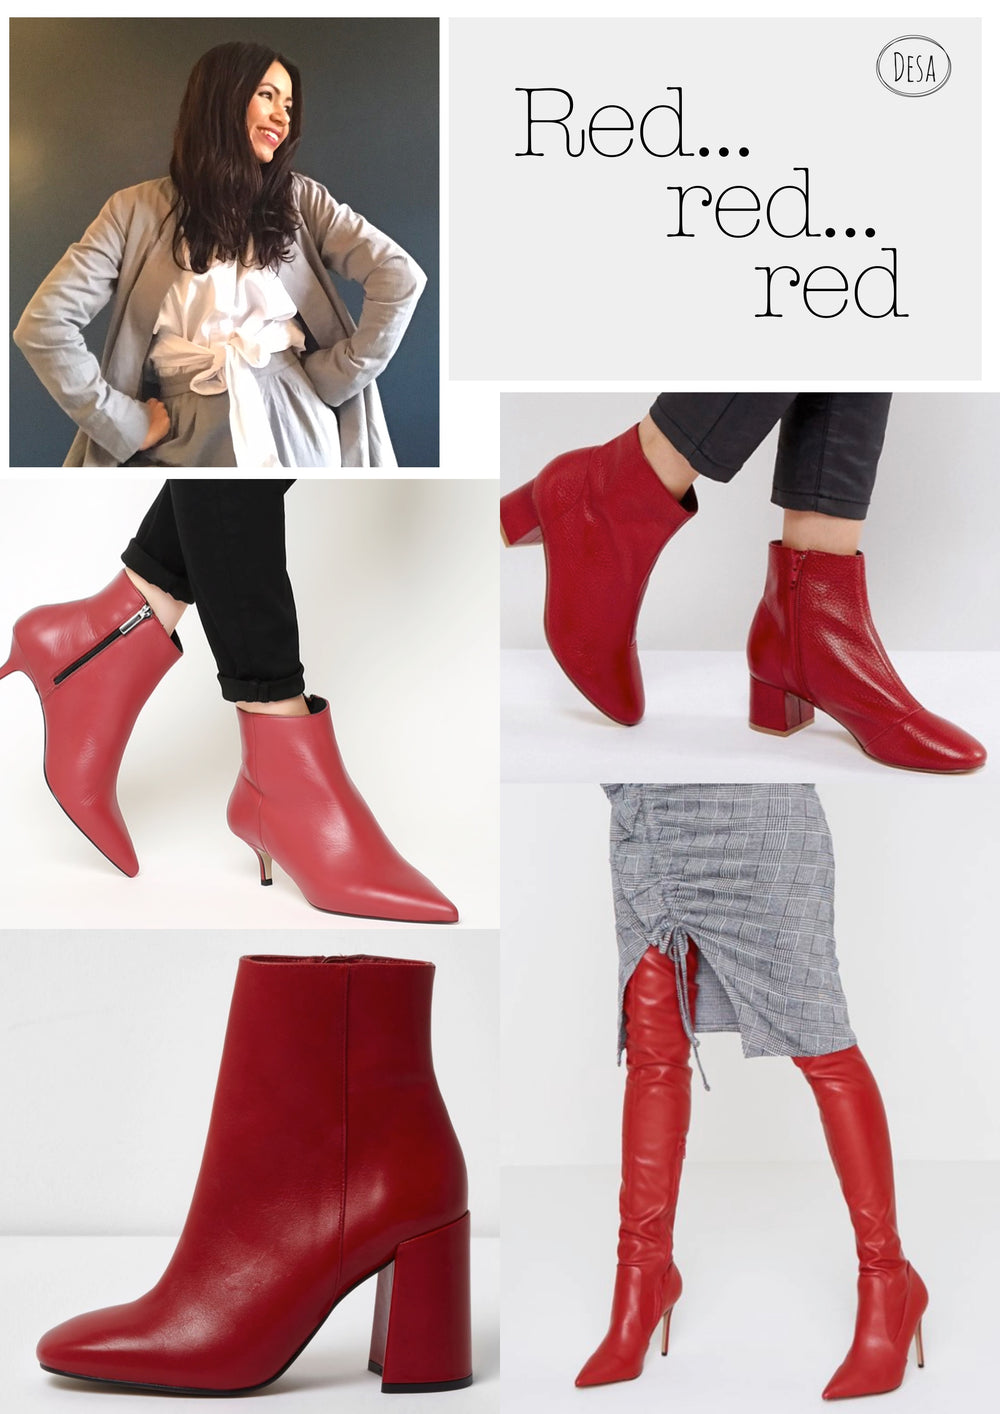 These (red) boots are made for walkin'...